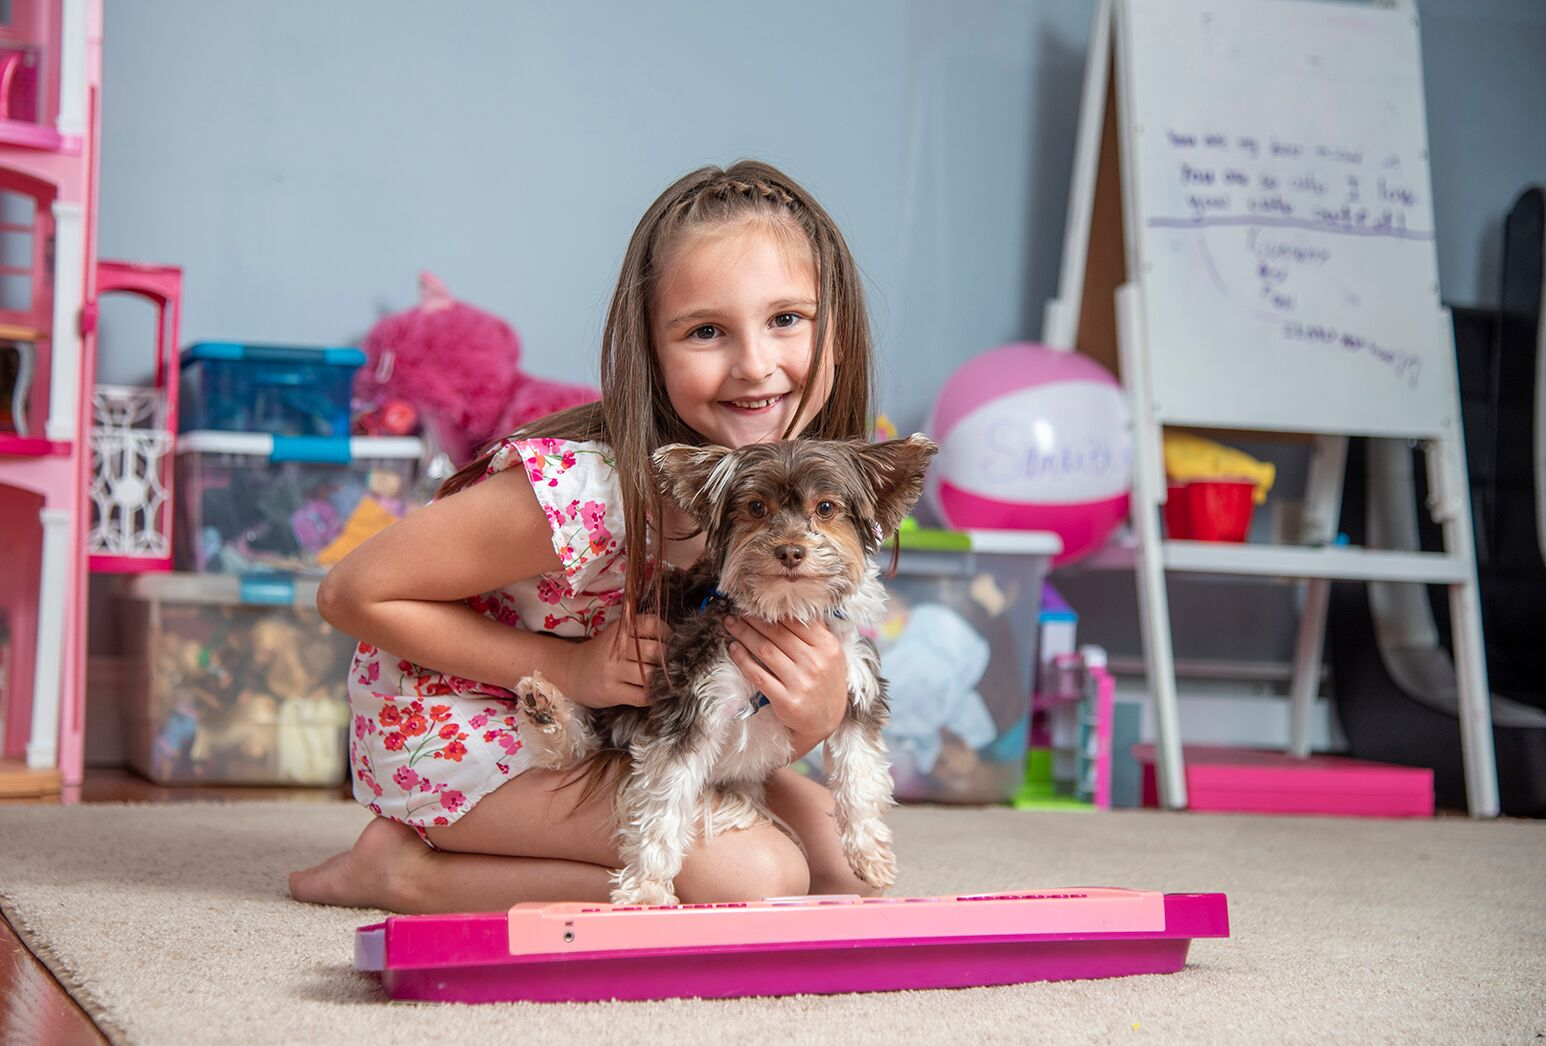 Young girl with long brown hair in a pink and white romper, with her little dog.